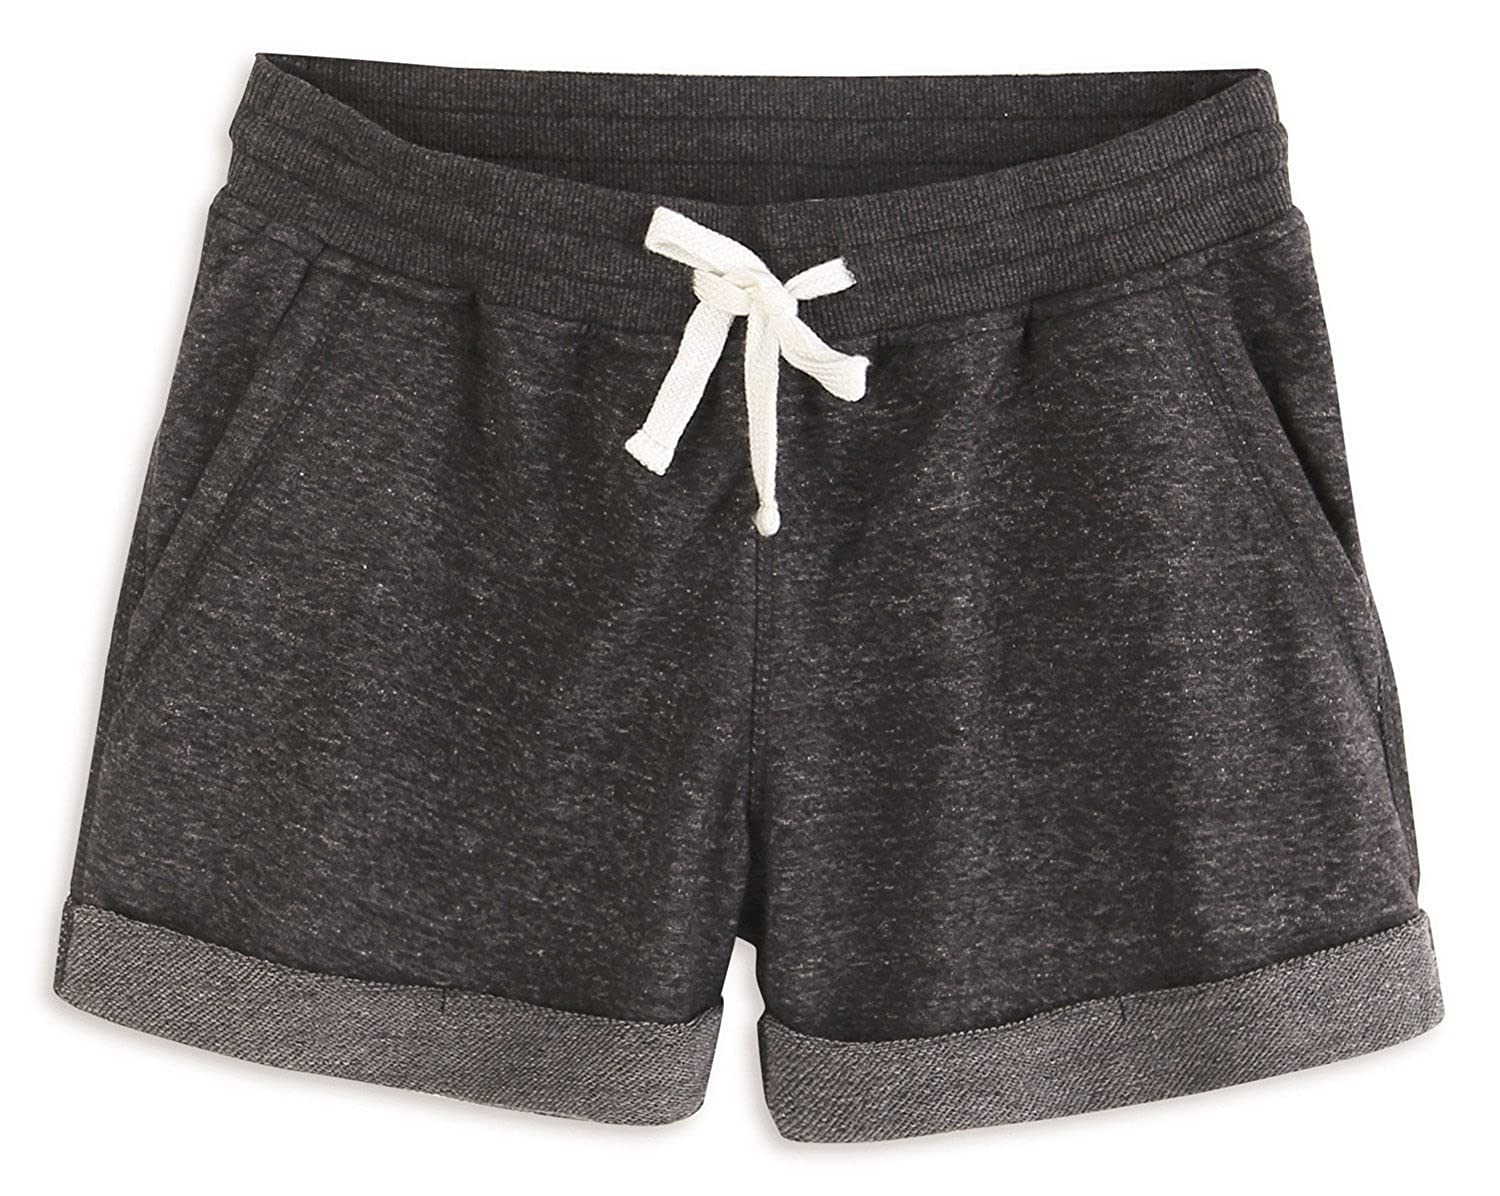 Charcoal Melange HARBETH Women's Soft Cotton Slim Fit Stretch Activewear Casual Lounge Shorts